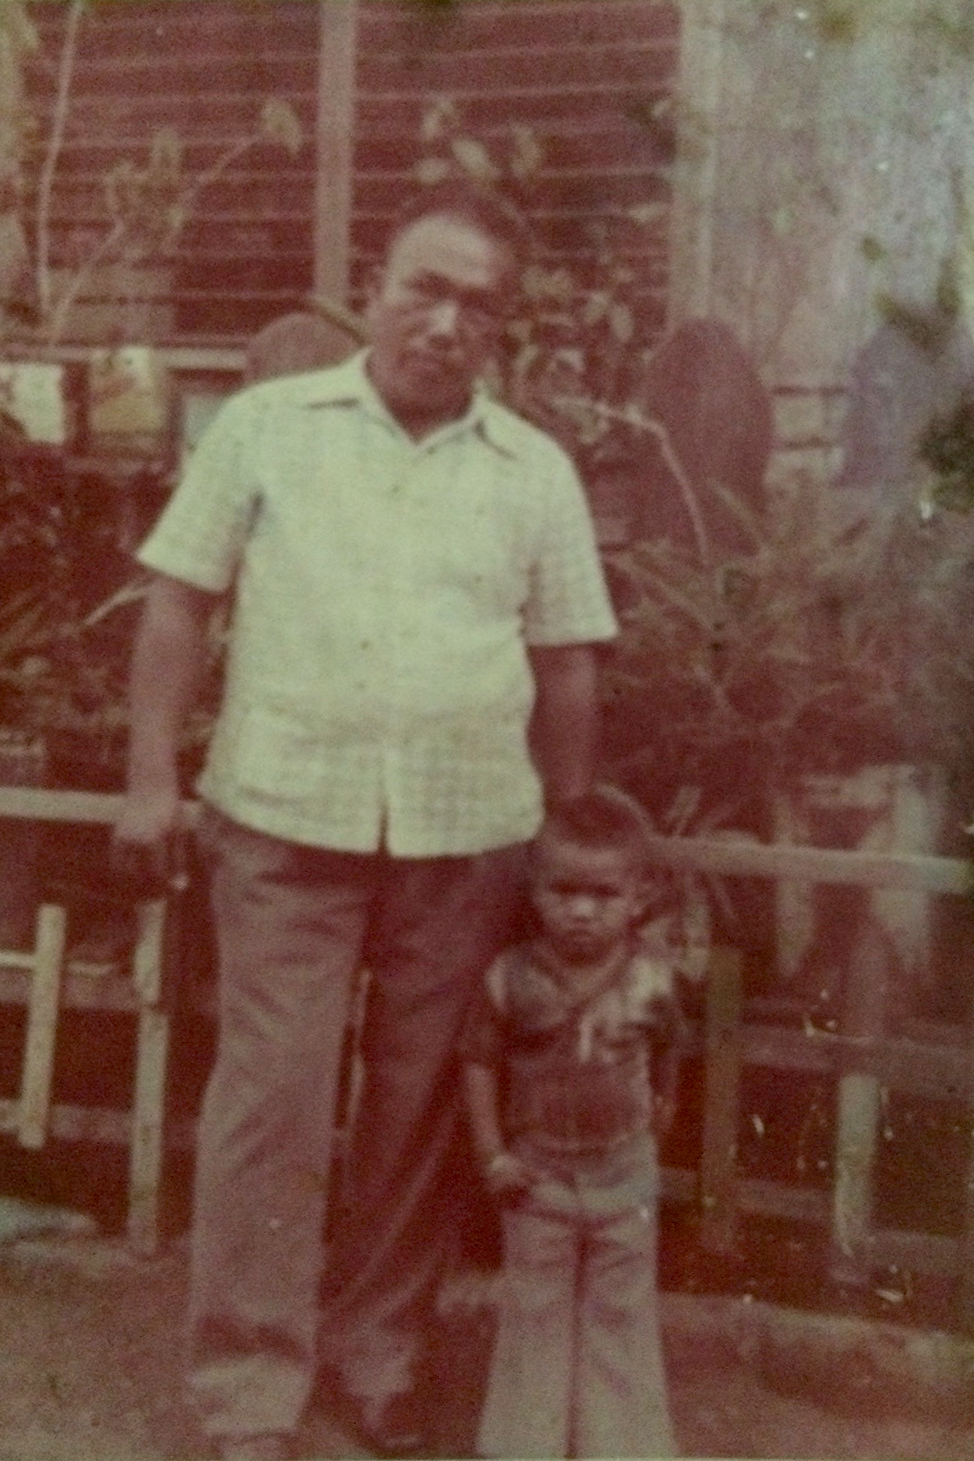 The author's Lolo — who brought the family to Tondo — and her kuya, in front of their old house in Gagalangin.